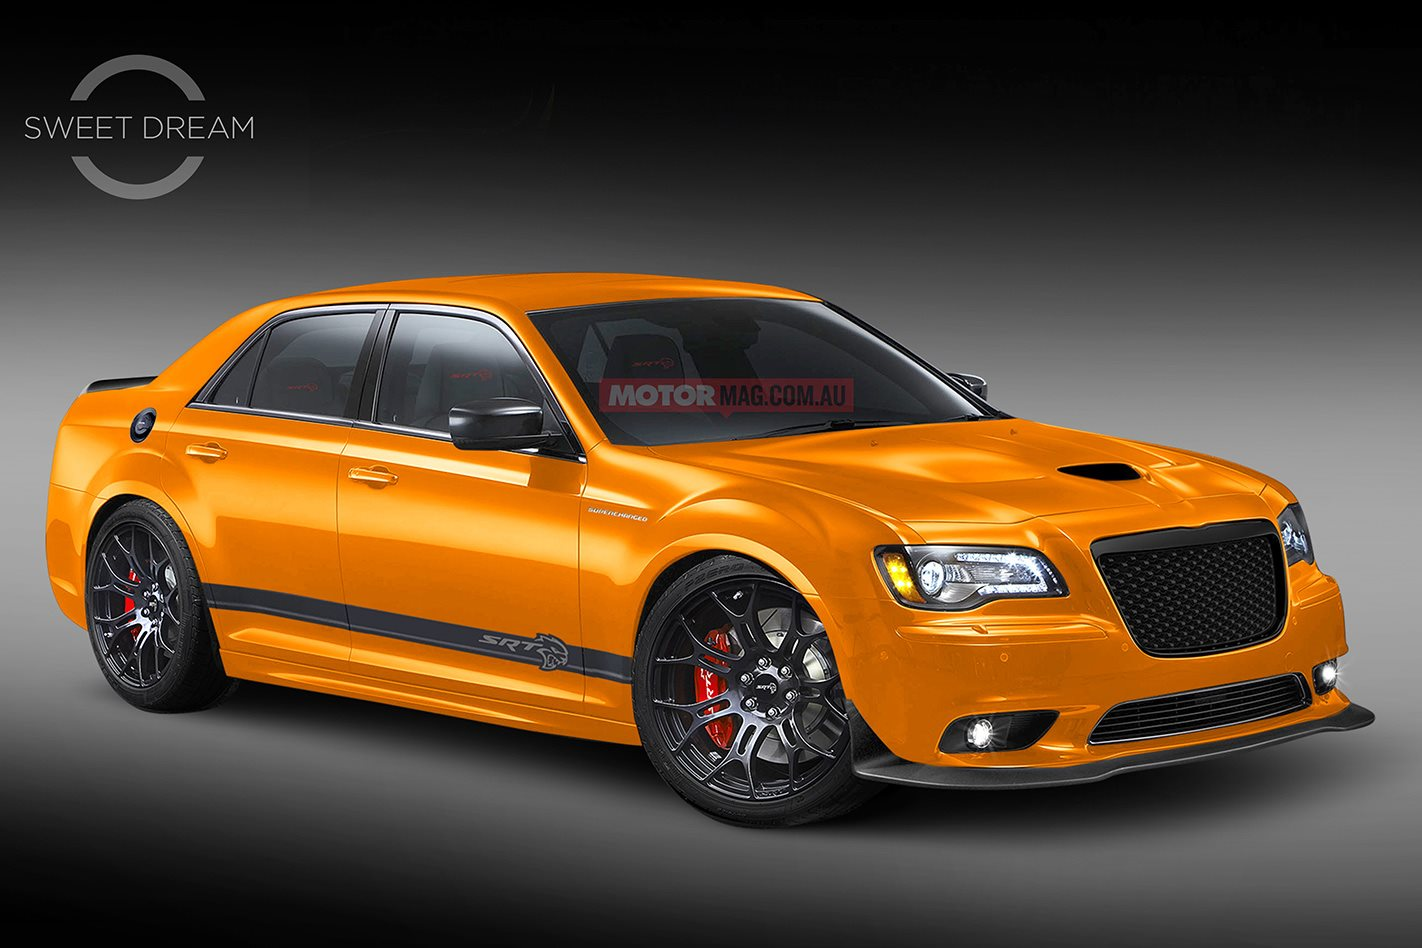 Chrysler 300srt >> Sweet Dream | Chrysler 300 SRT Hellcat | MOTOR